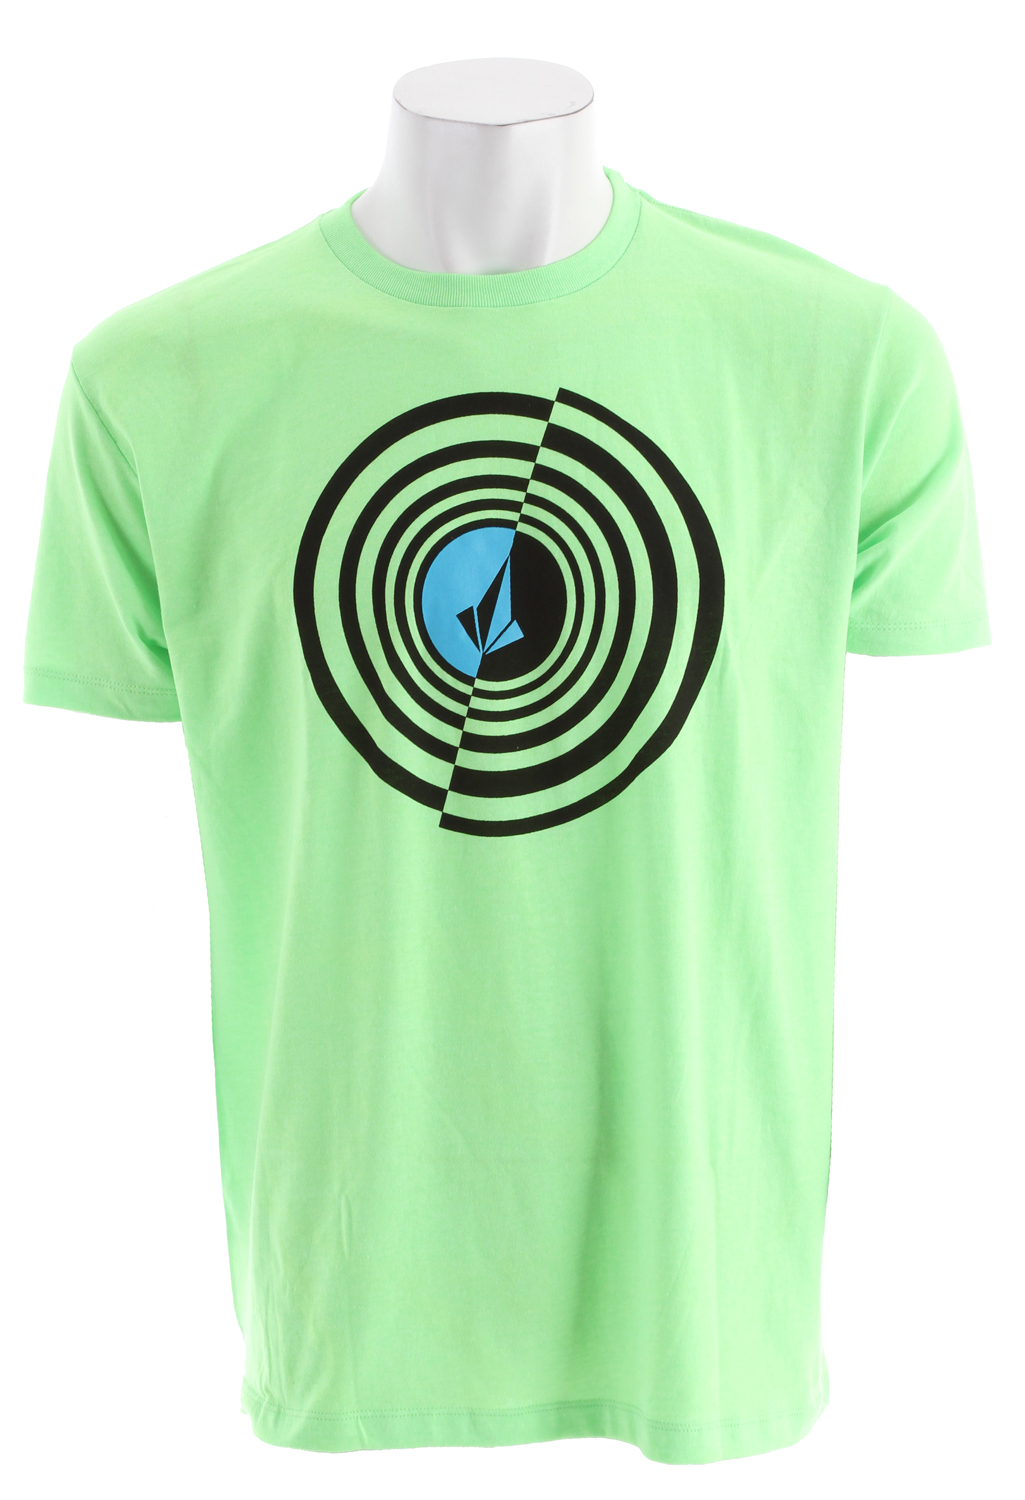 Surf Key Features of the Volcom Circle Stoned T-Shirt: Basic Screenprint Basic Fit 60% cotton/40% polyester - $20.00